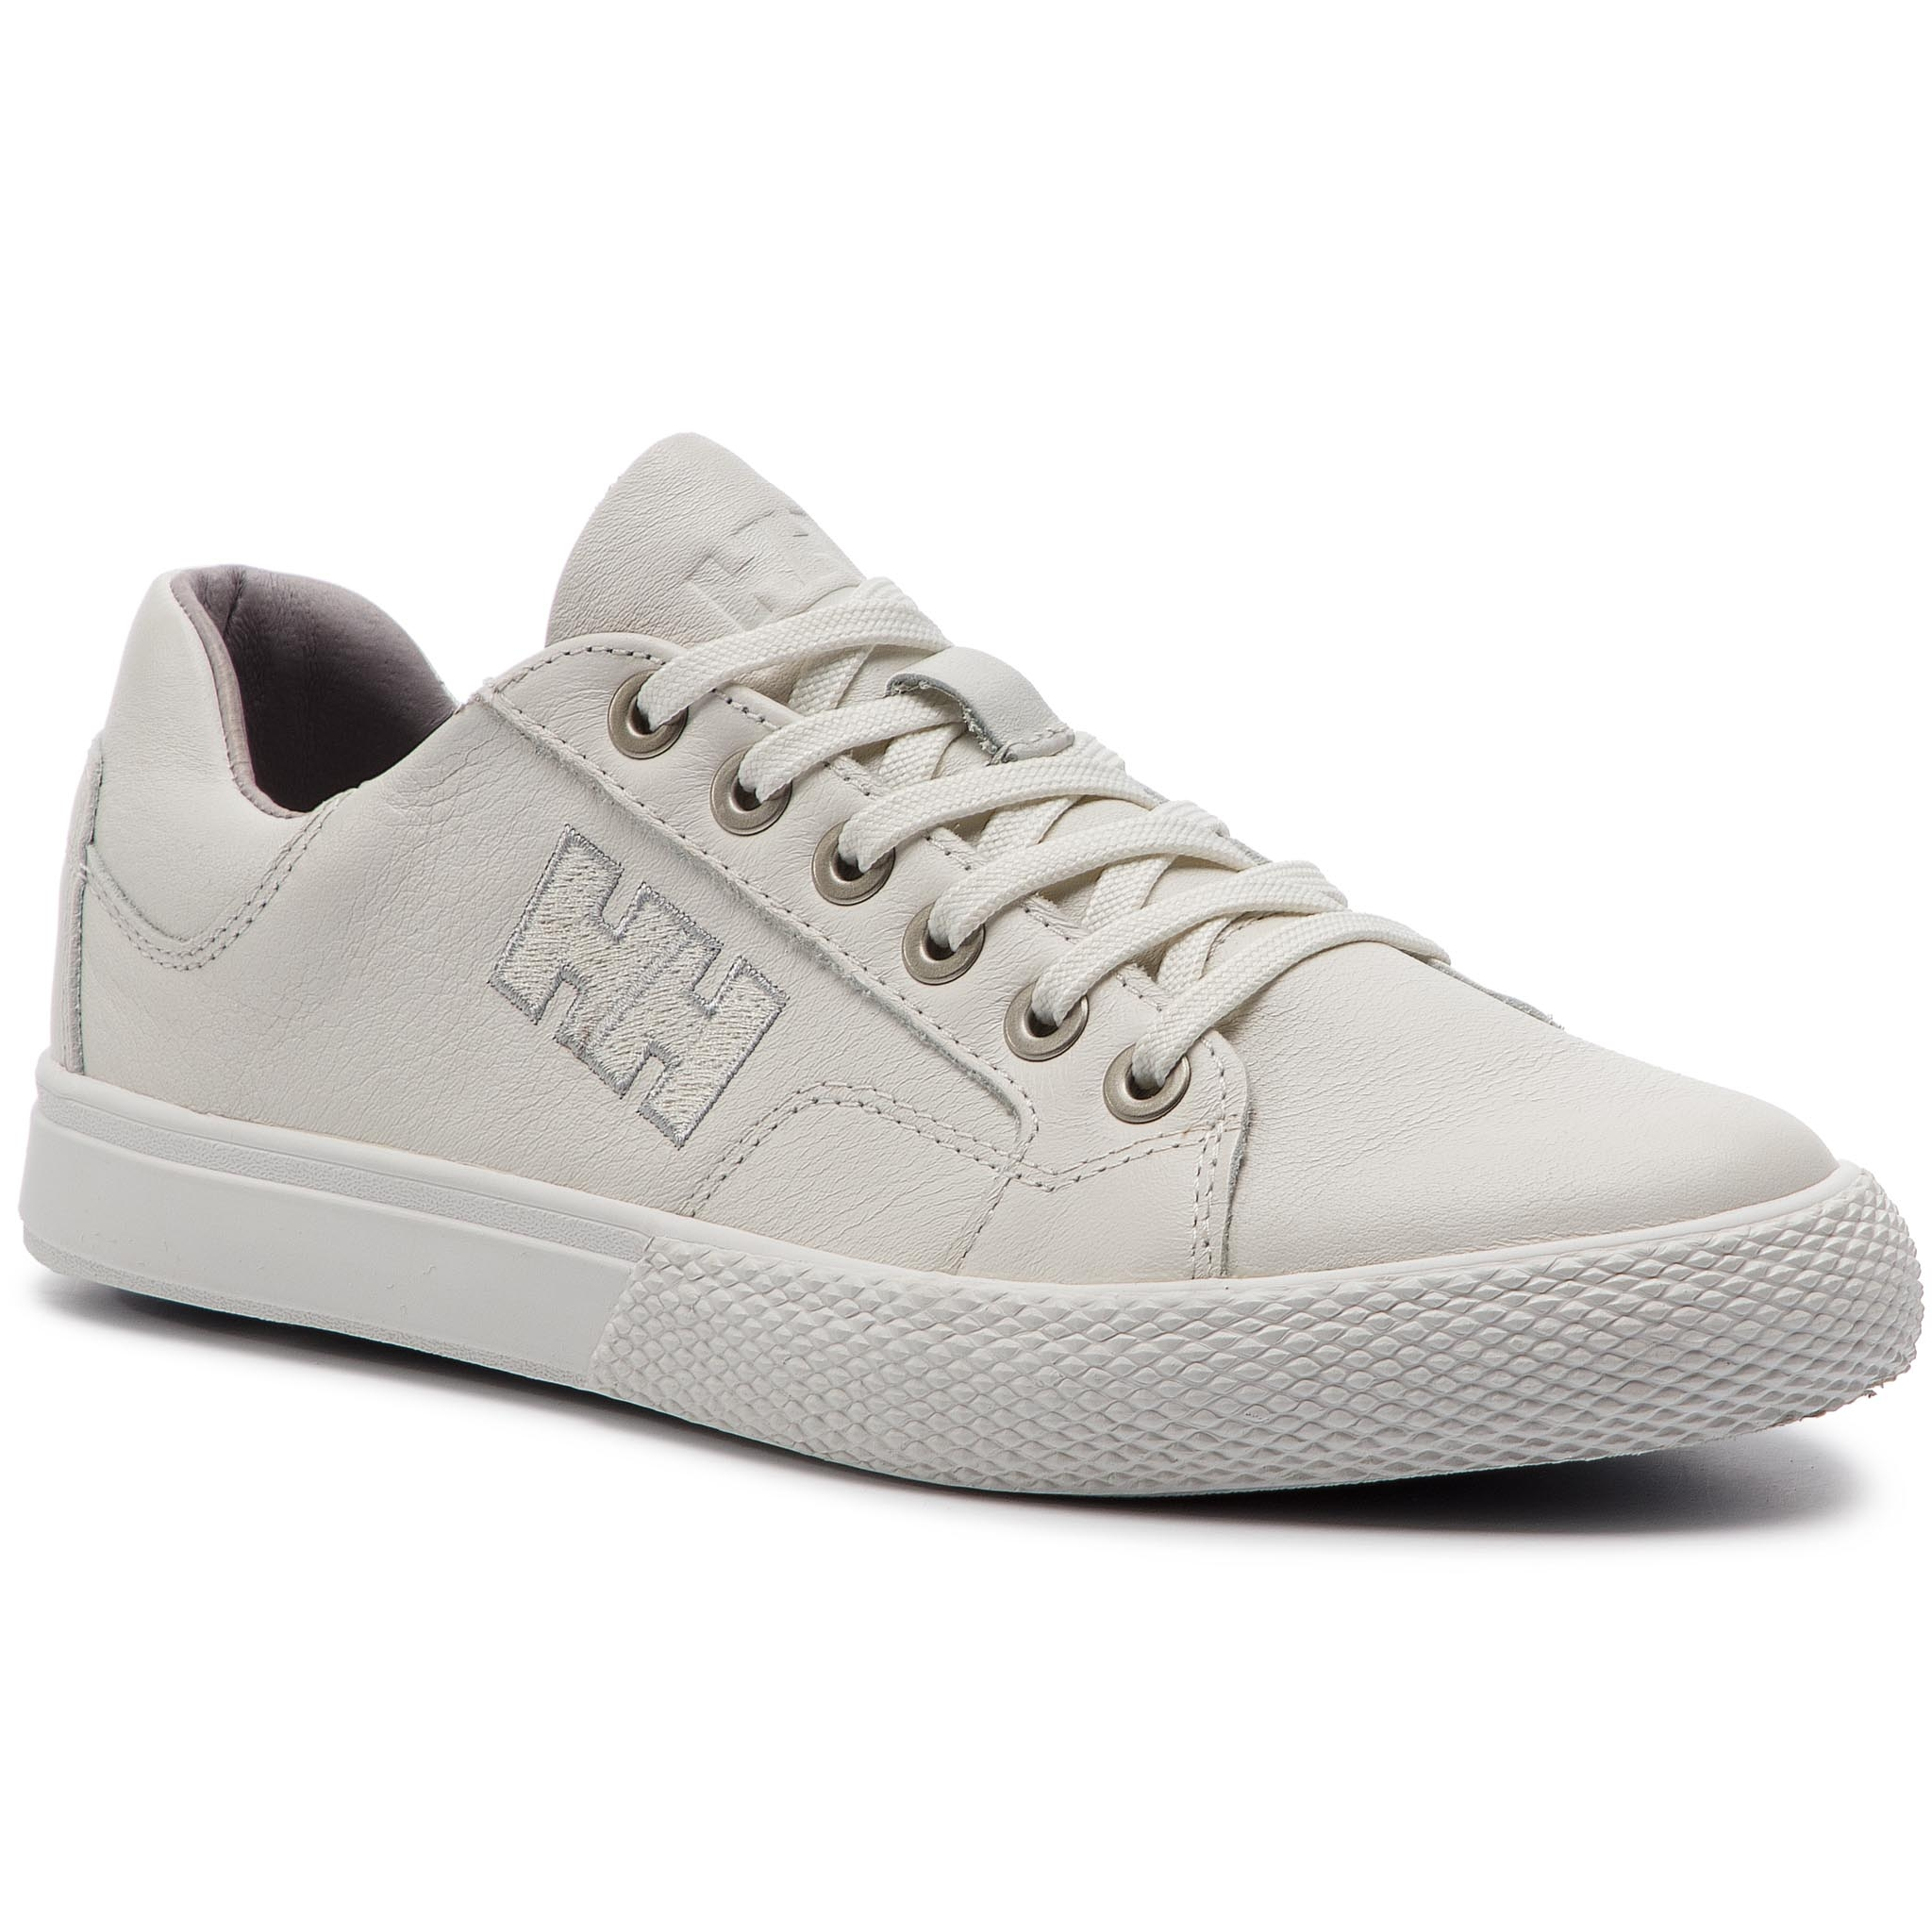 Teniși Helly Hansen - Fjord Lv-2 113-04.011 Off White/Silver Grey/Blue Water imagine epantofi.ro 2021